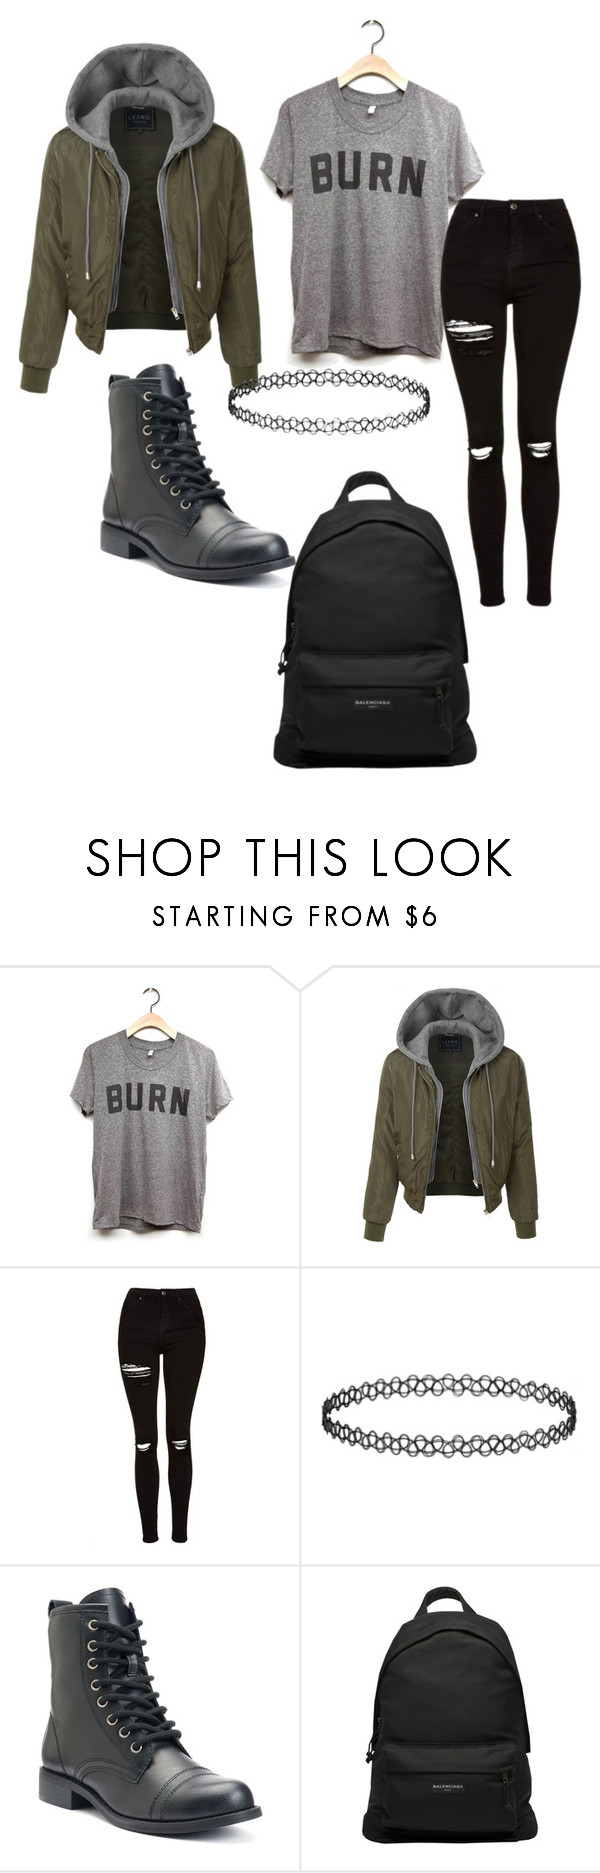 """""""burn!"""" by fandomgirl46 ❤ liked on Polyvore featuring LE3NO, Topshop, Balenciaga, BackToSchool, school, jeans, rippedjeans and combatboots"""